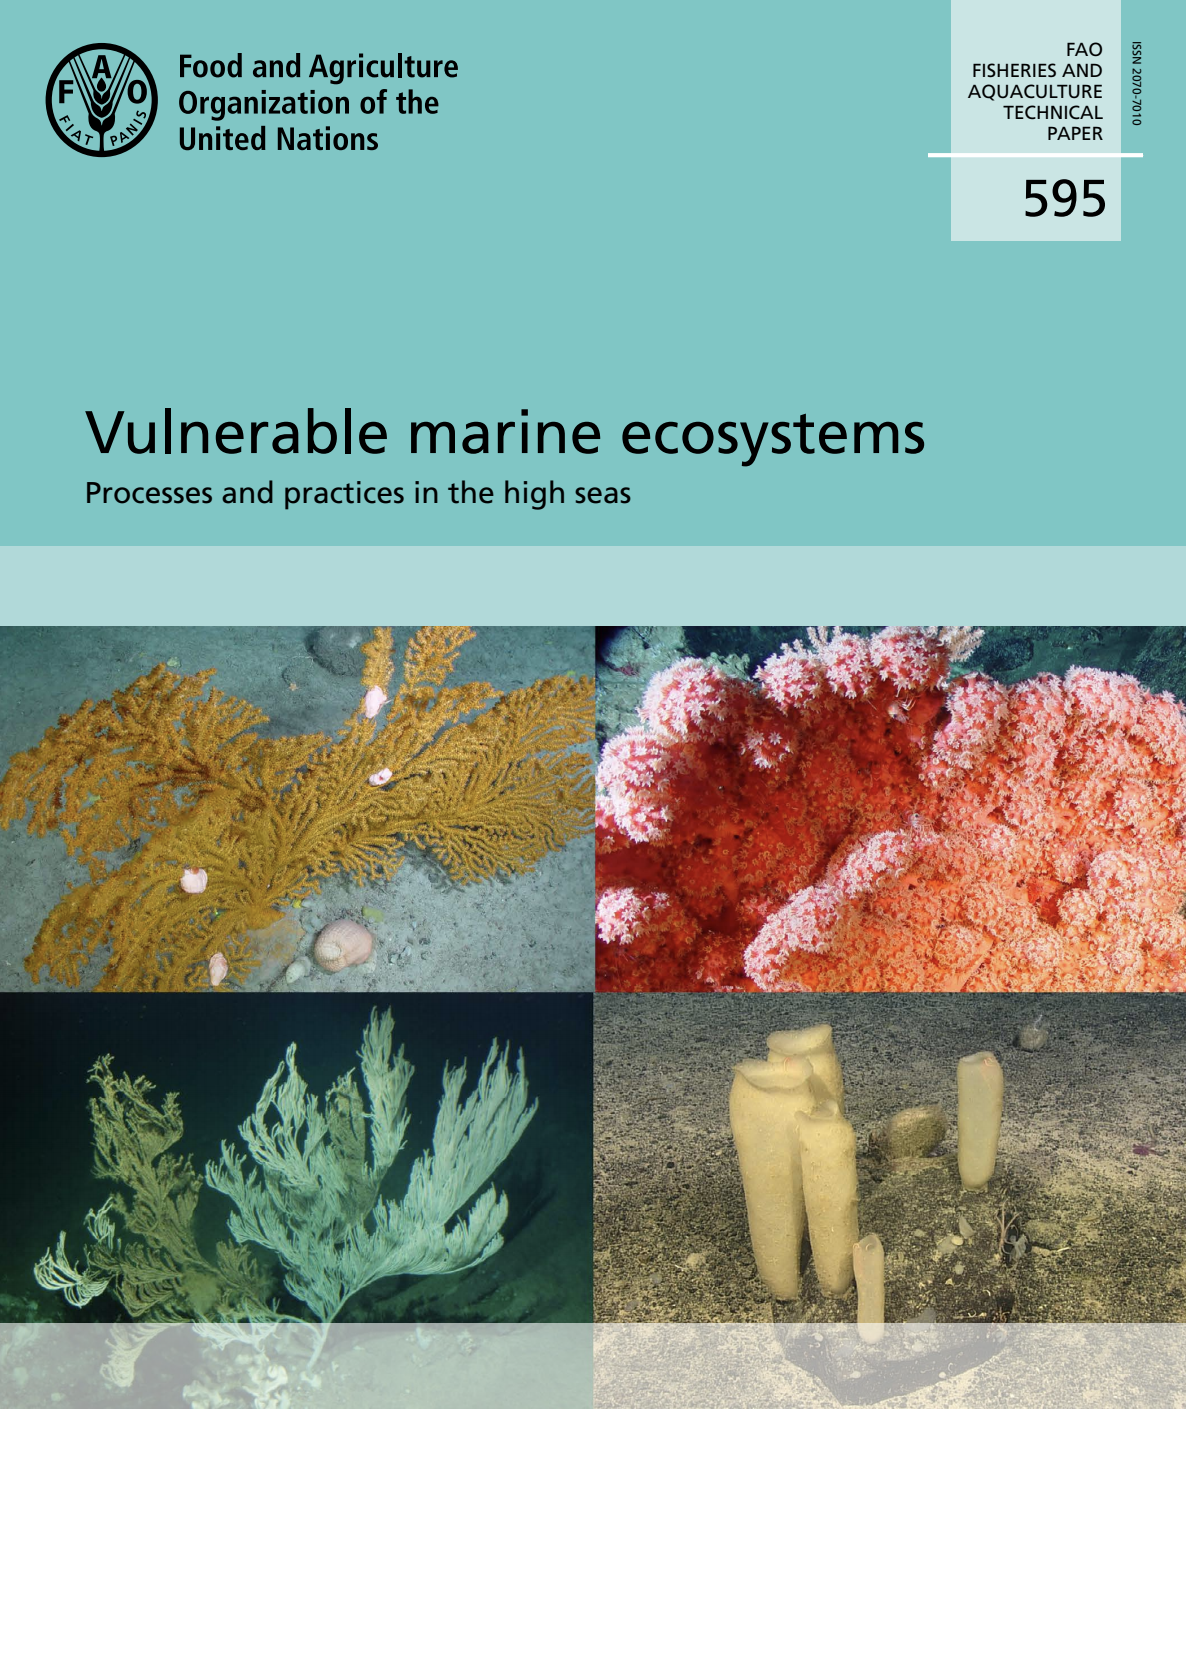 Vulnerable marine ecosystems: Processes and practices in the high seas